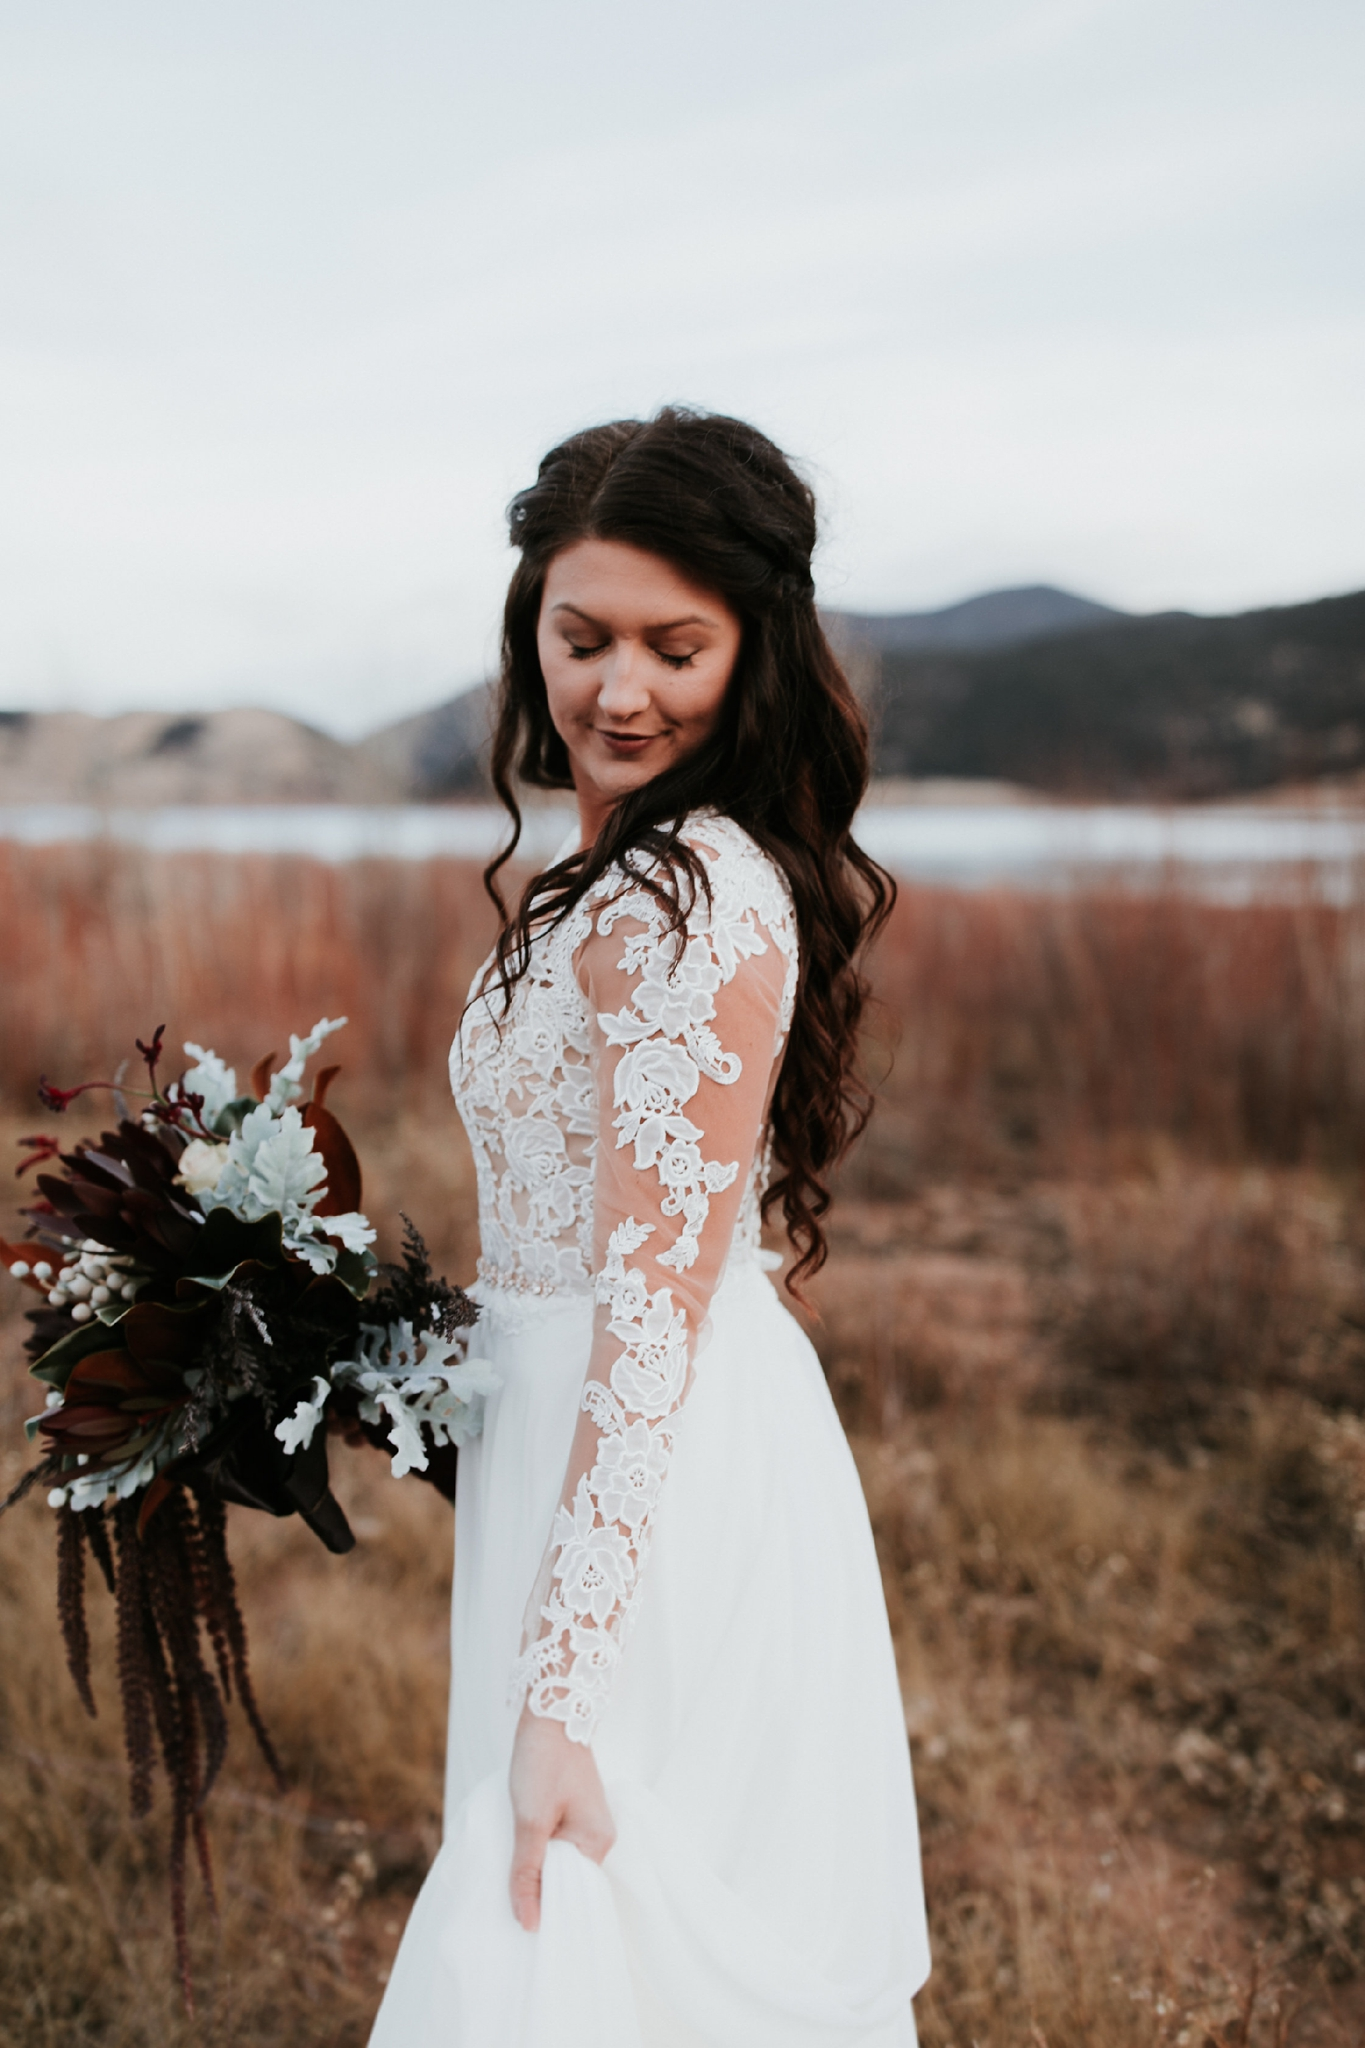 Alicia+lucia+photography+-+albuquerque+wedding+photographer+-+santa+fe+wedding+photography+-+new+mexico+wedding+photographer+-+new+mexico+wedding+-+wedding+gowns+-+bridal+gowns+-+a+line+wedding+gown_0013.jpg